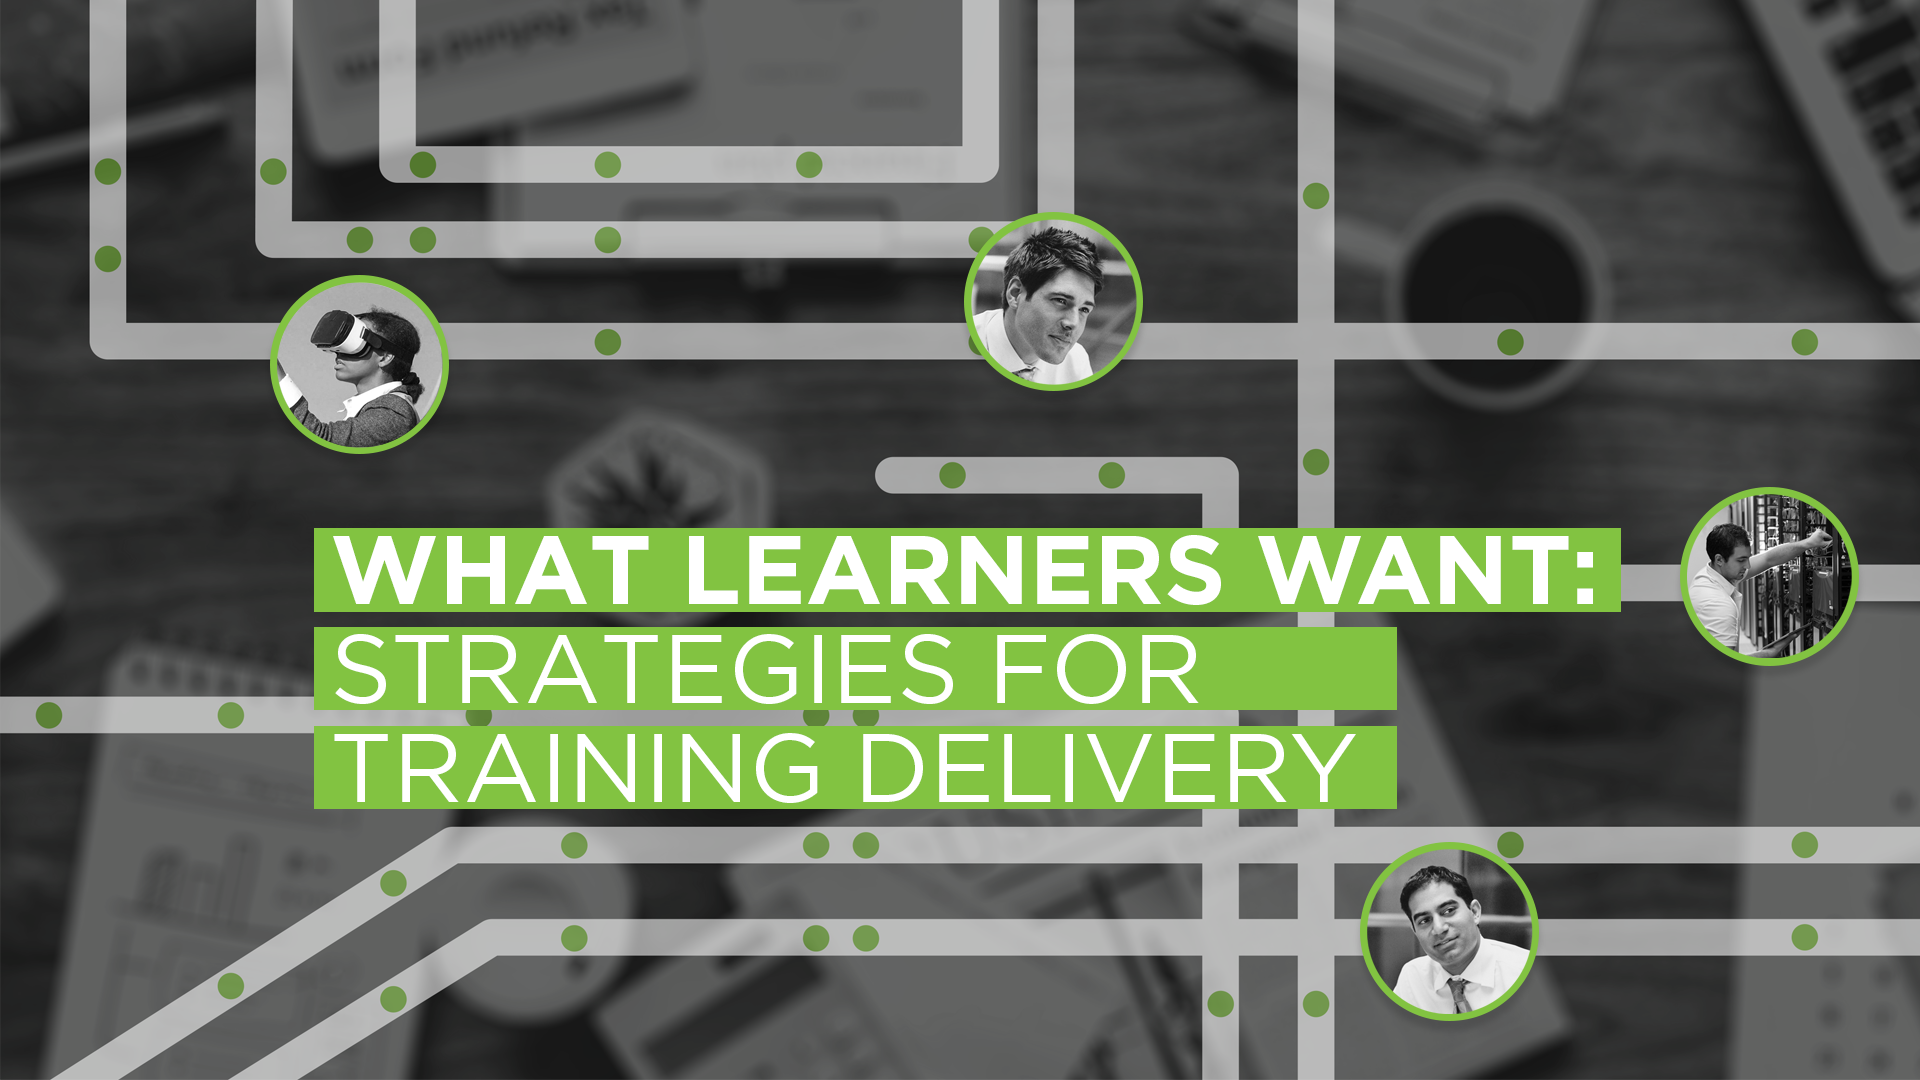 What Learners Want: Strategies for Training Delivery